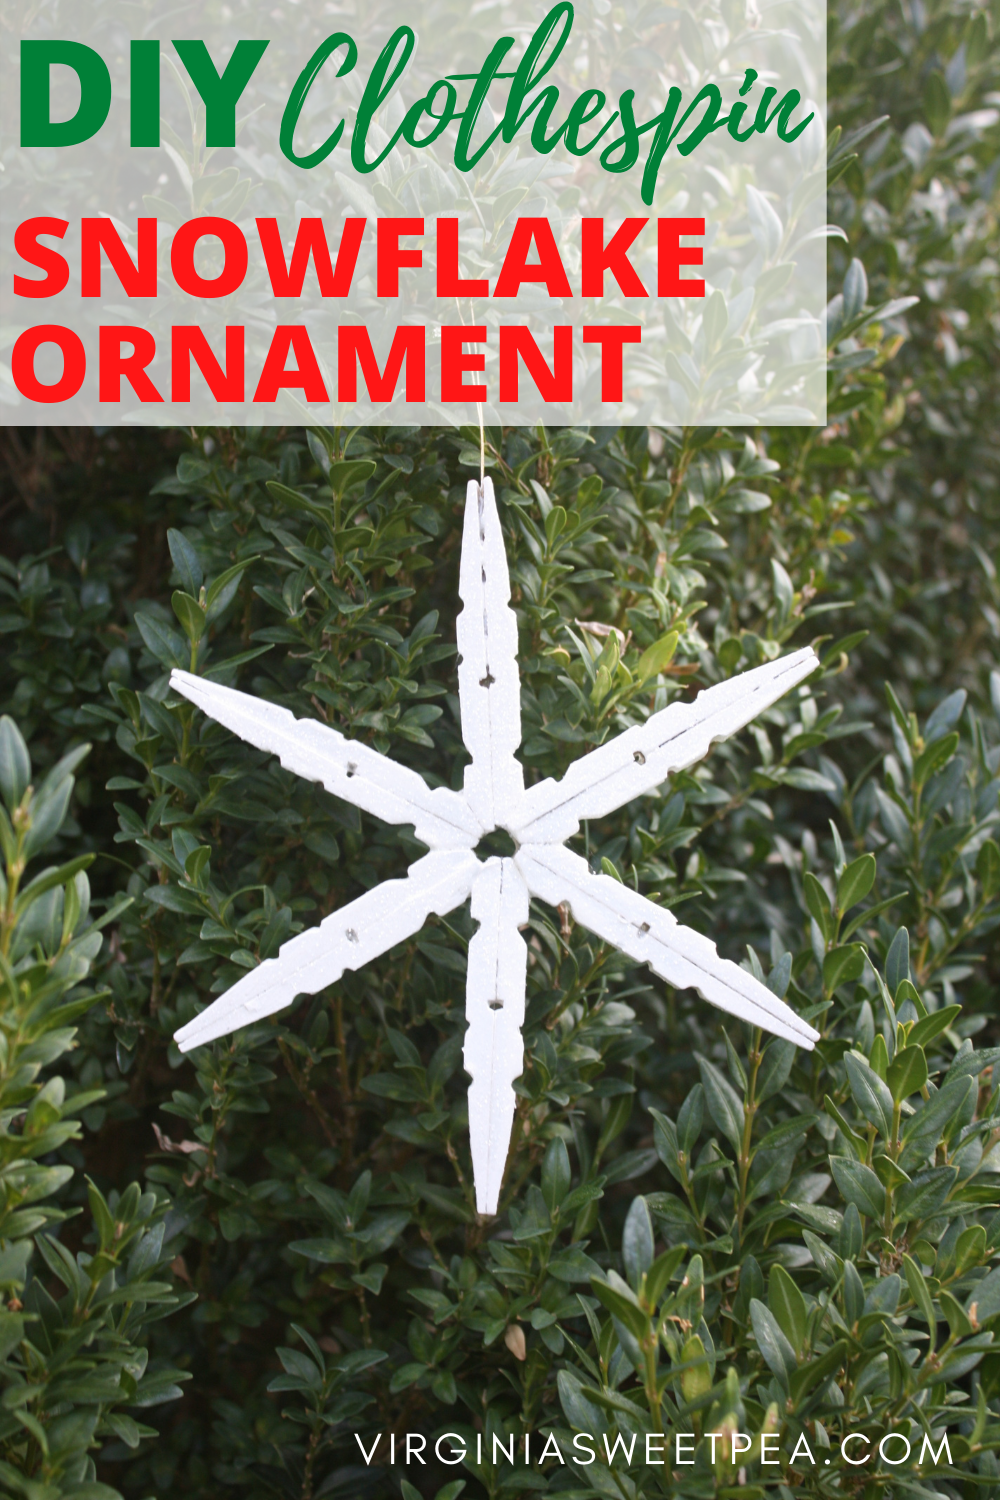 DIY Clothespin Snowflake Ornament - Learn how to make a clothespin snowflake ornament for your Christmas tree. This is an easy craft that is fun to make. via @spaula